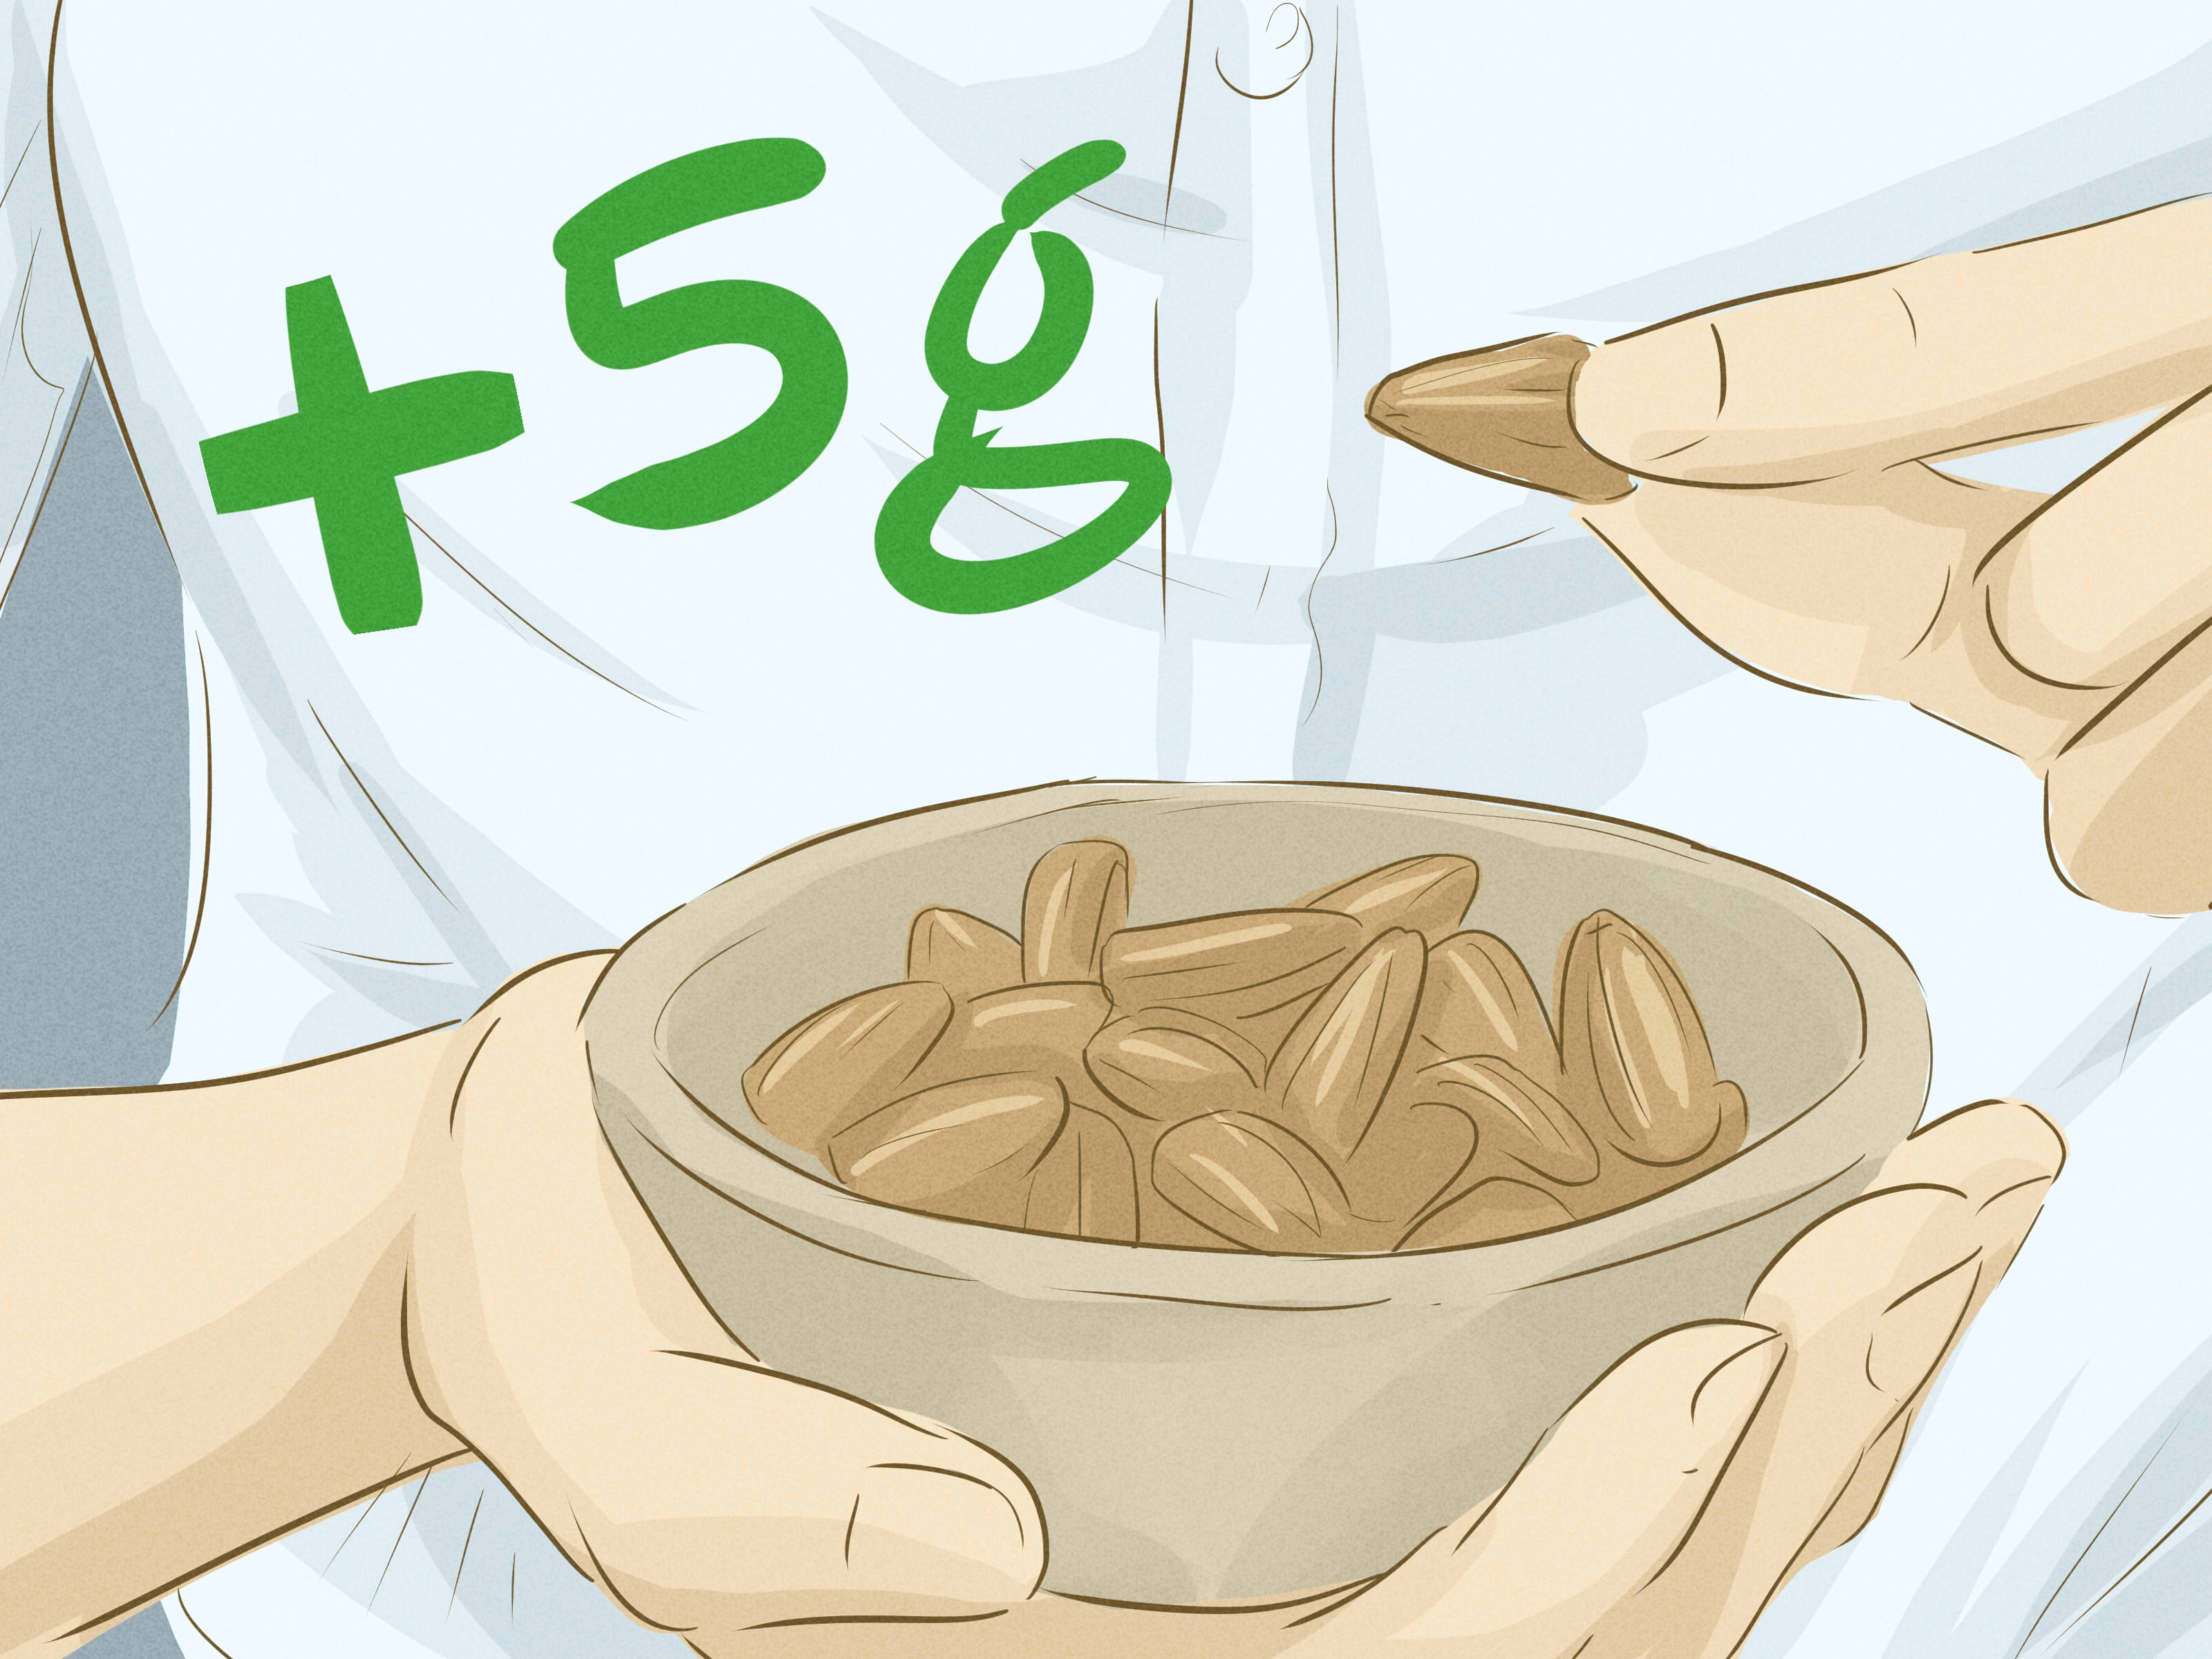 58 Kilos En Libras Expert Advice On How To Lose 5 Pounds In A Day Wikihow